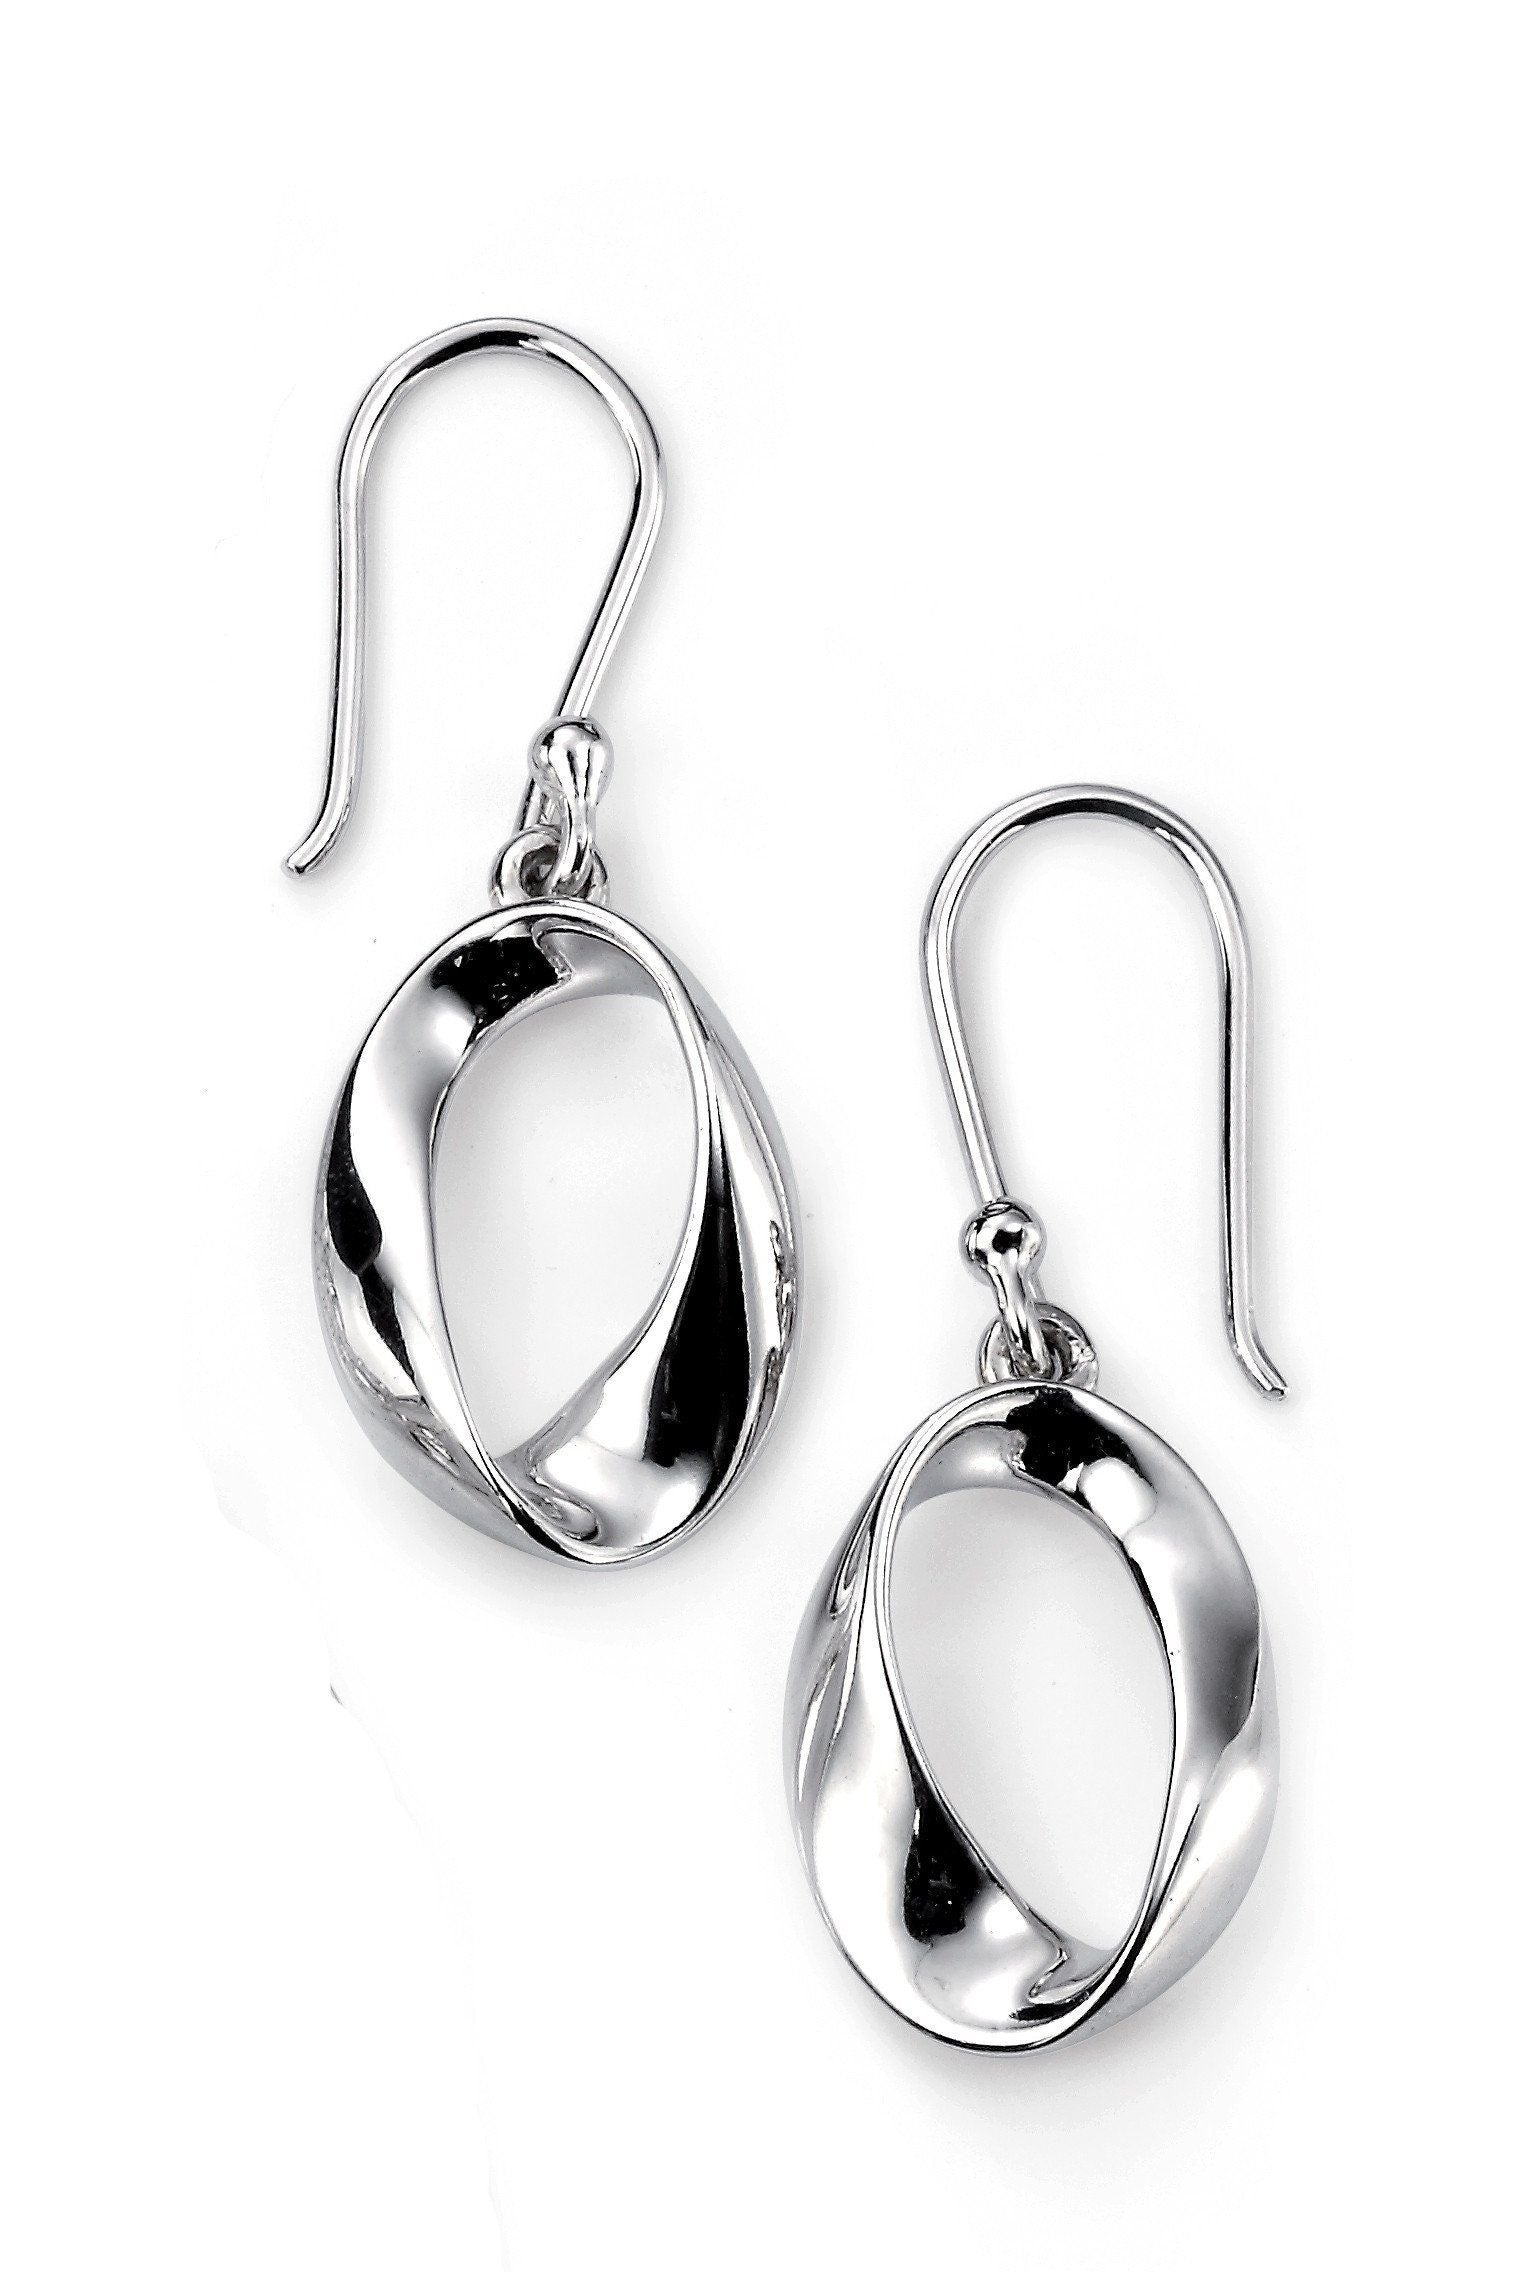 Sterling Silver Twis Hoop Drop Earrings SV4089E - Jay's Jewellery